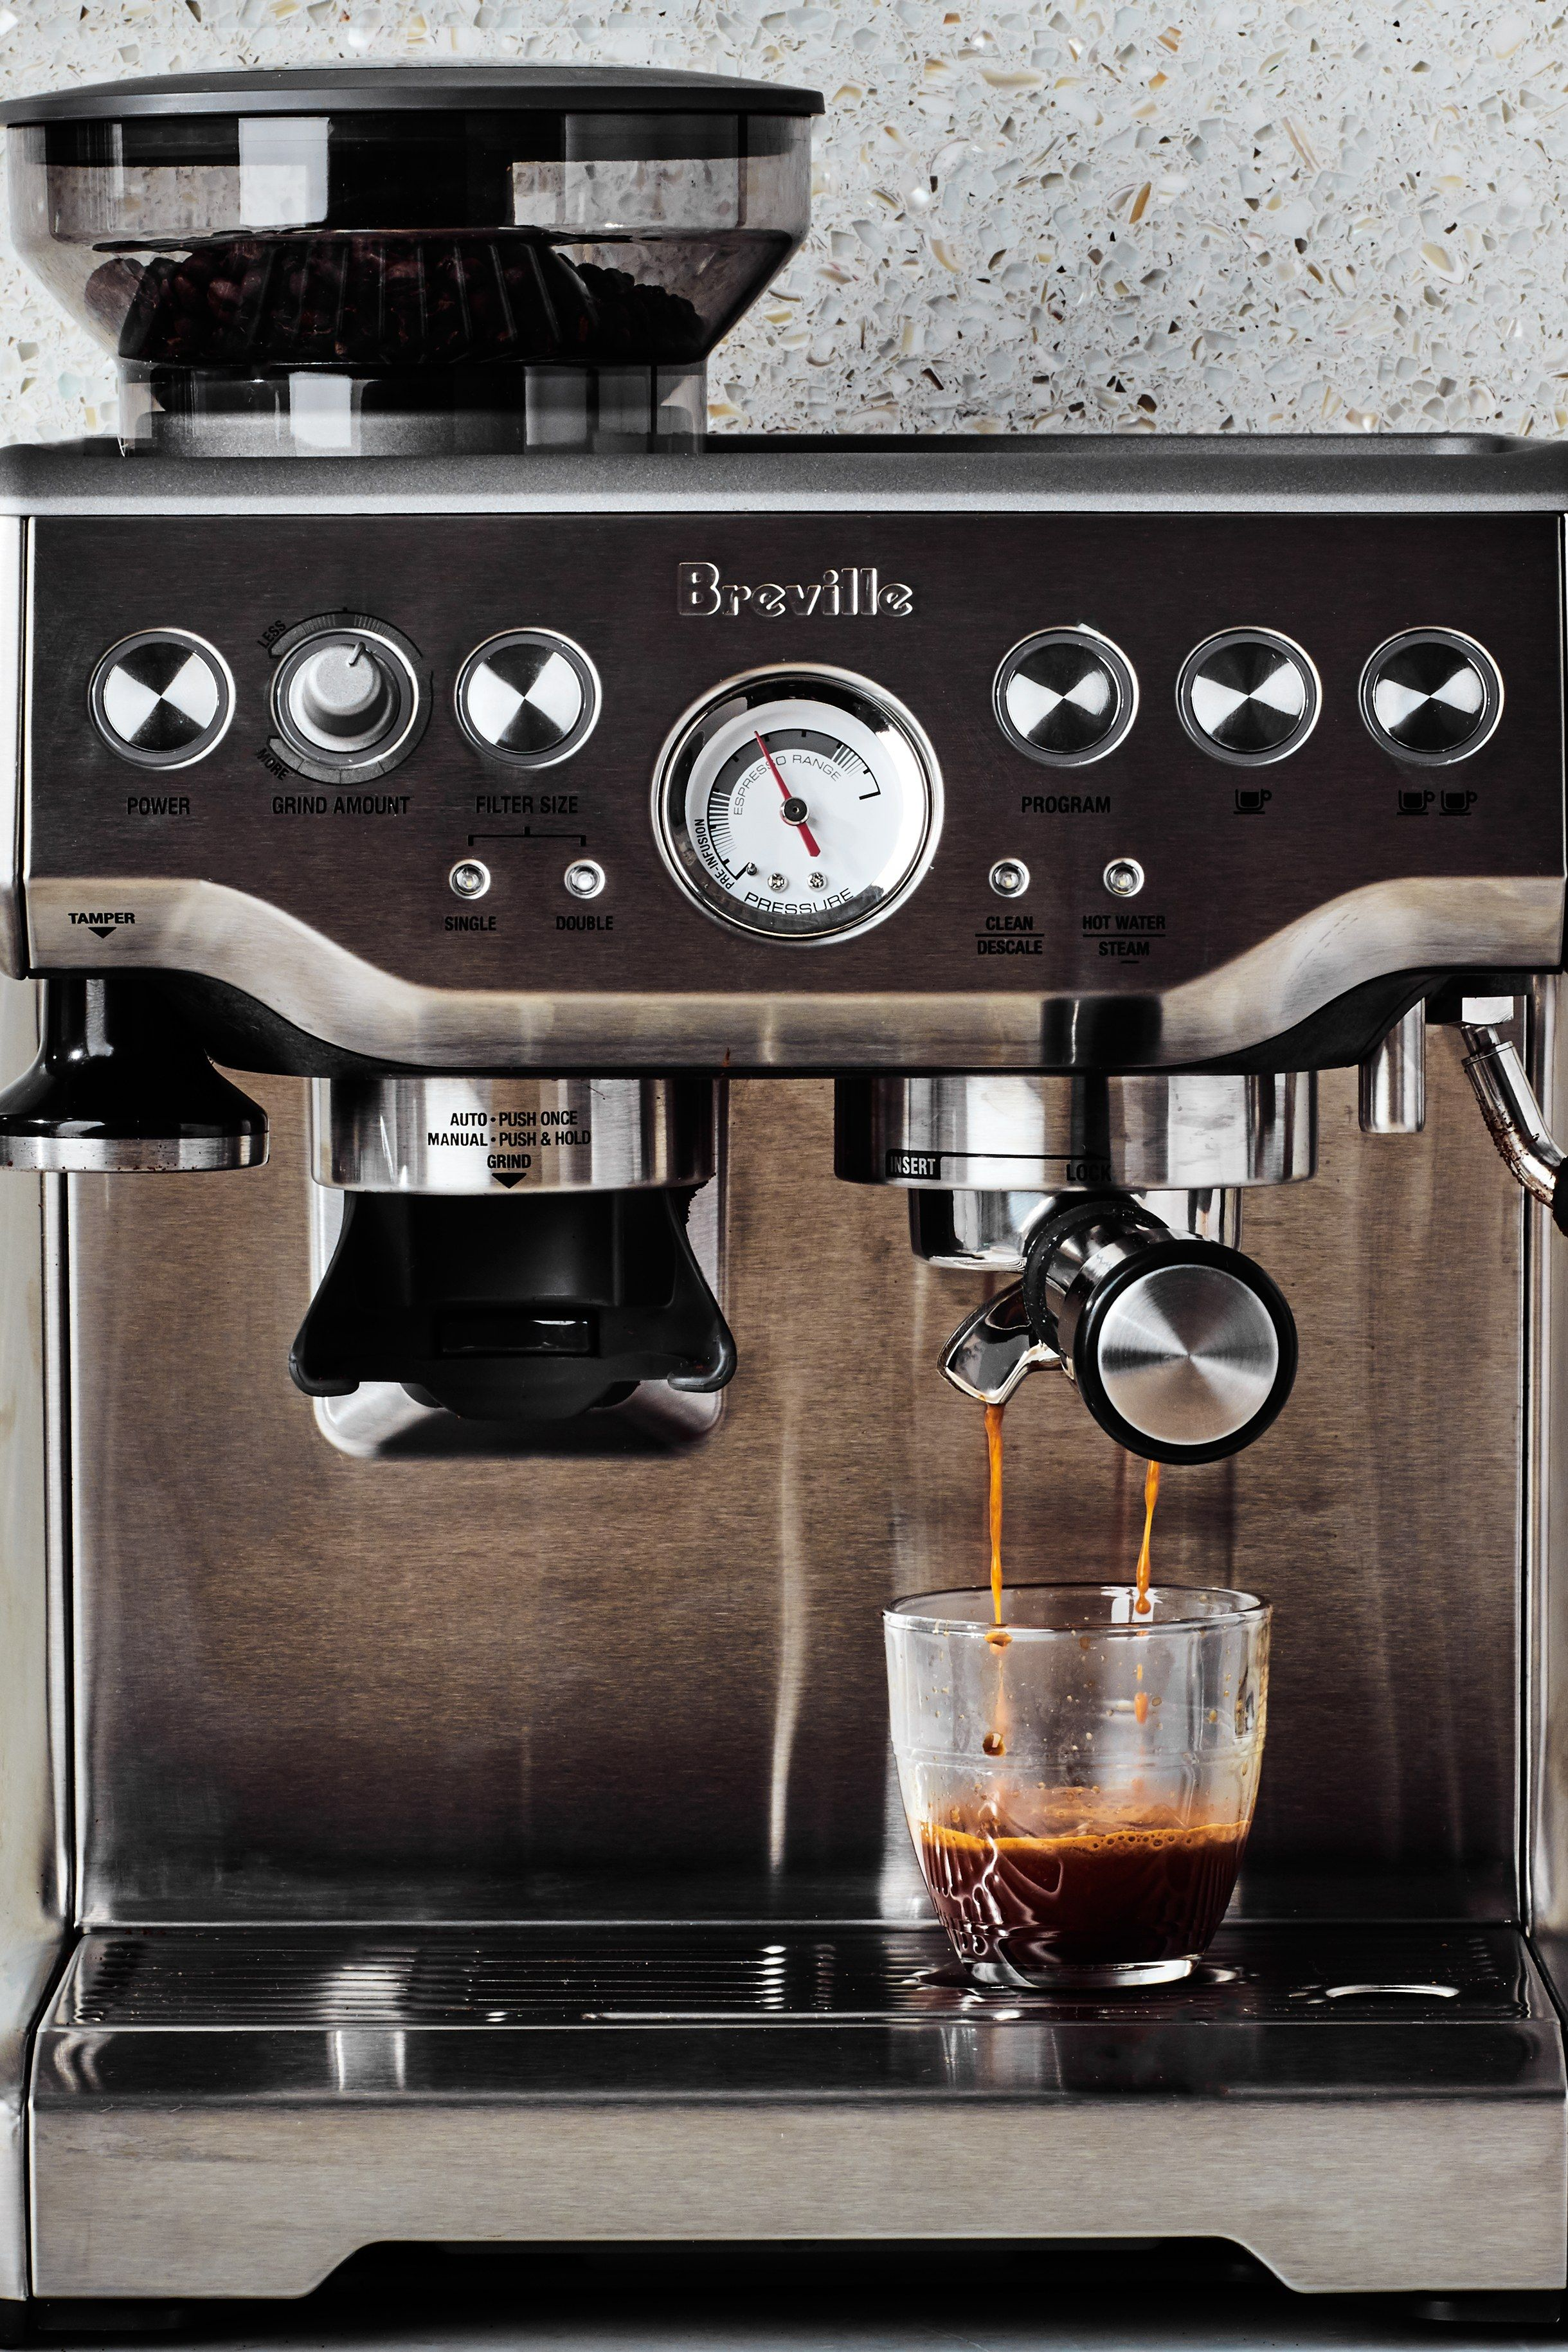 An espresso machine can put coffee shop quality espresso